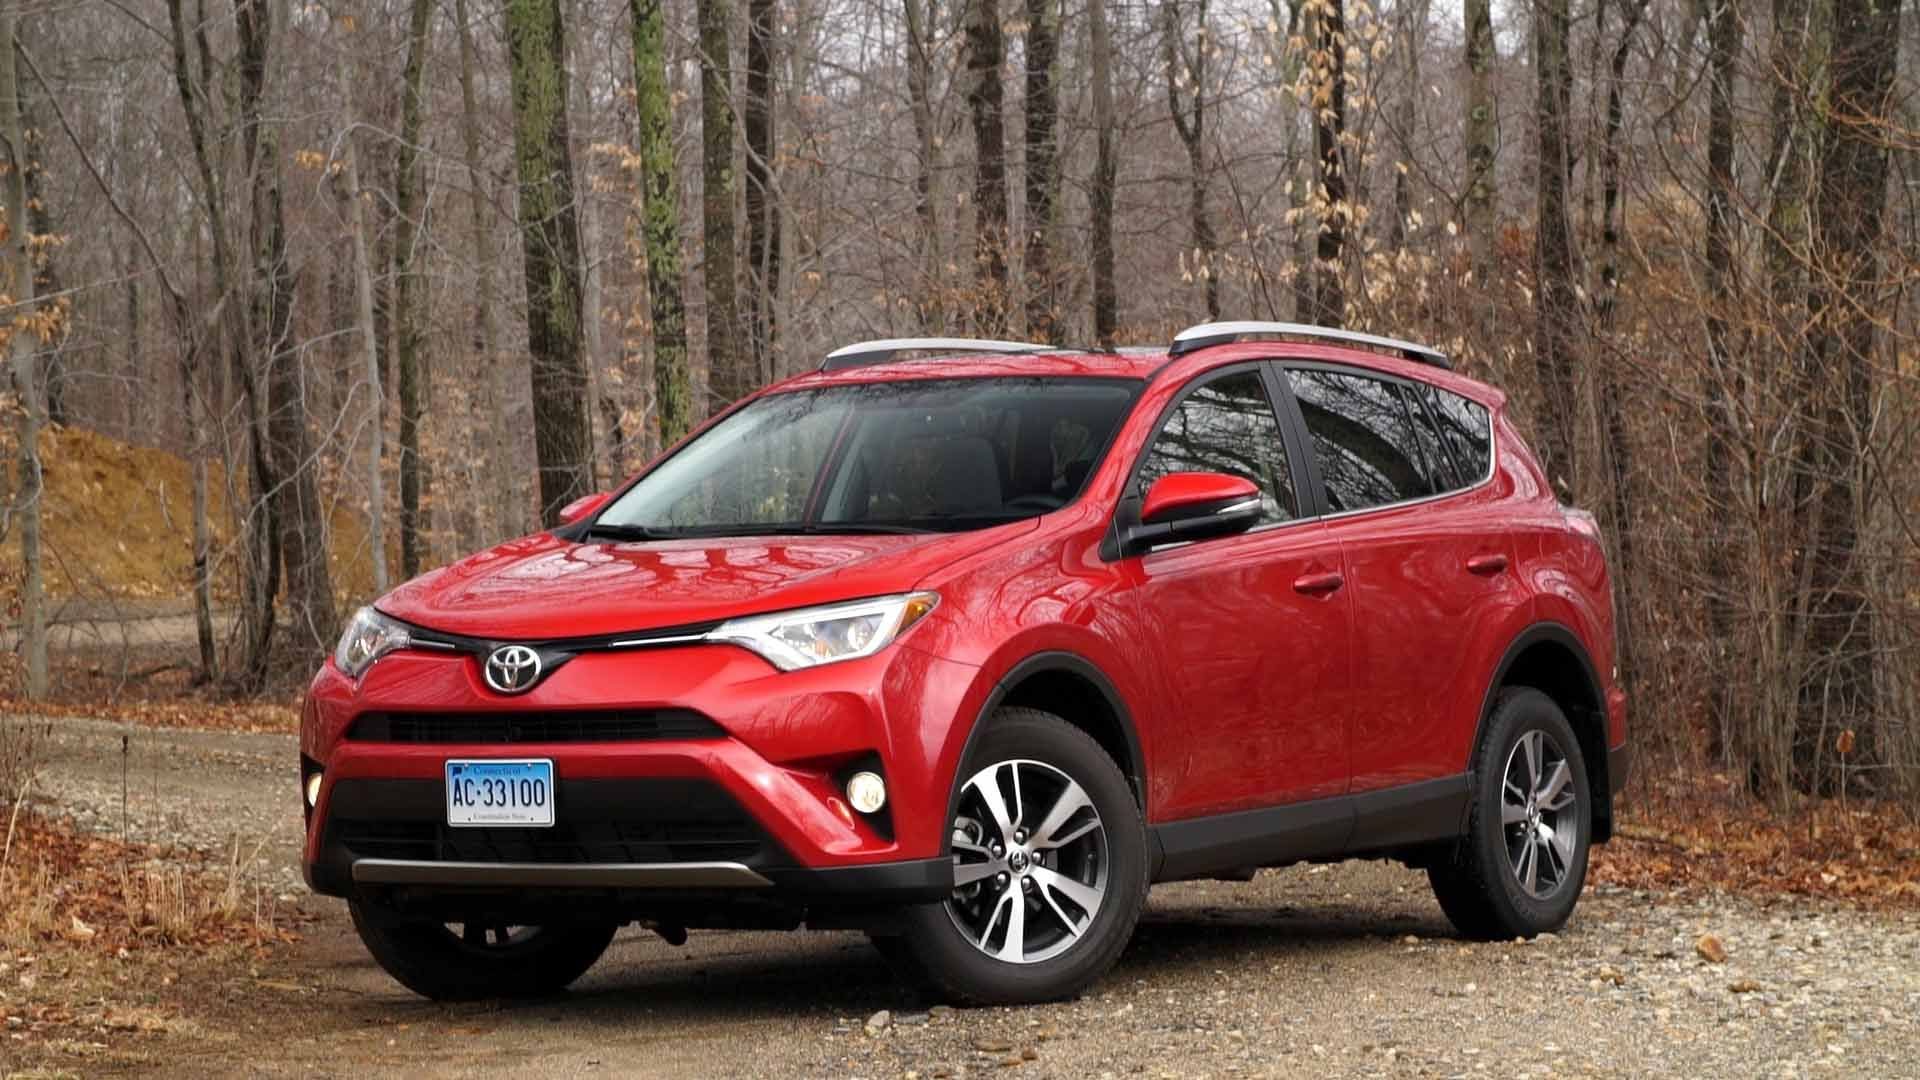 toyota rav4 hybrid proves to be the most fuel efficient suv ever tested 2016 autos spotlight. Black Bedroom Furniture Sets. Home Design Ideas